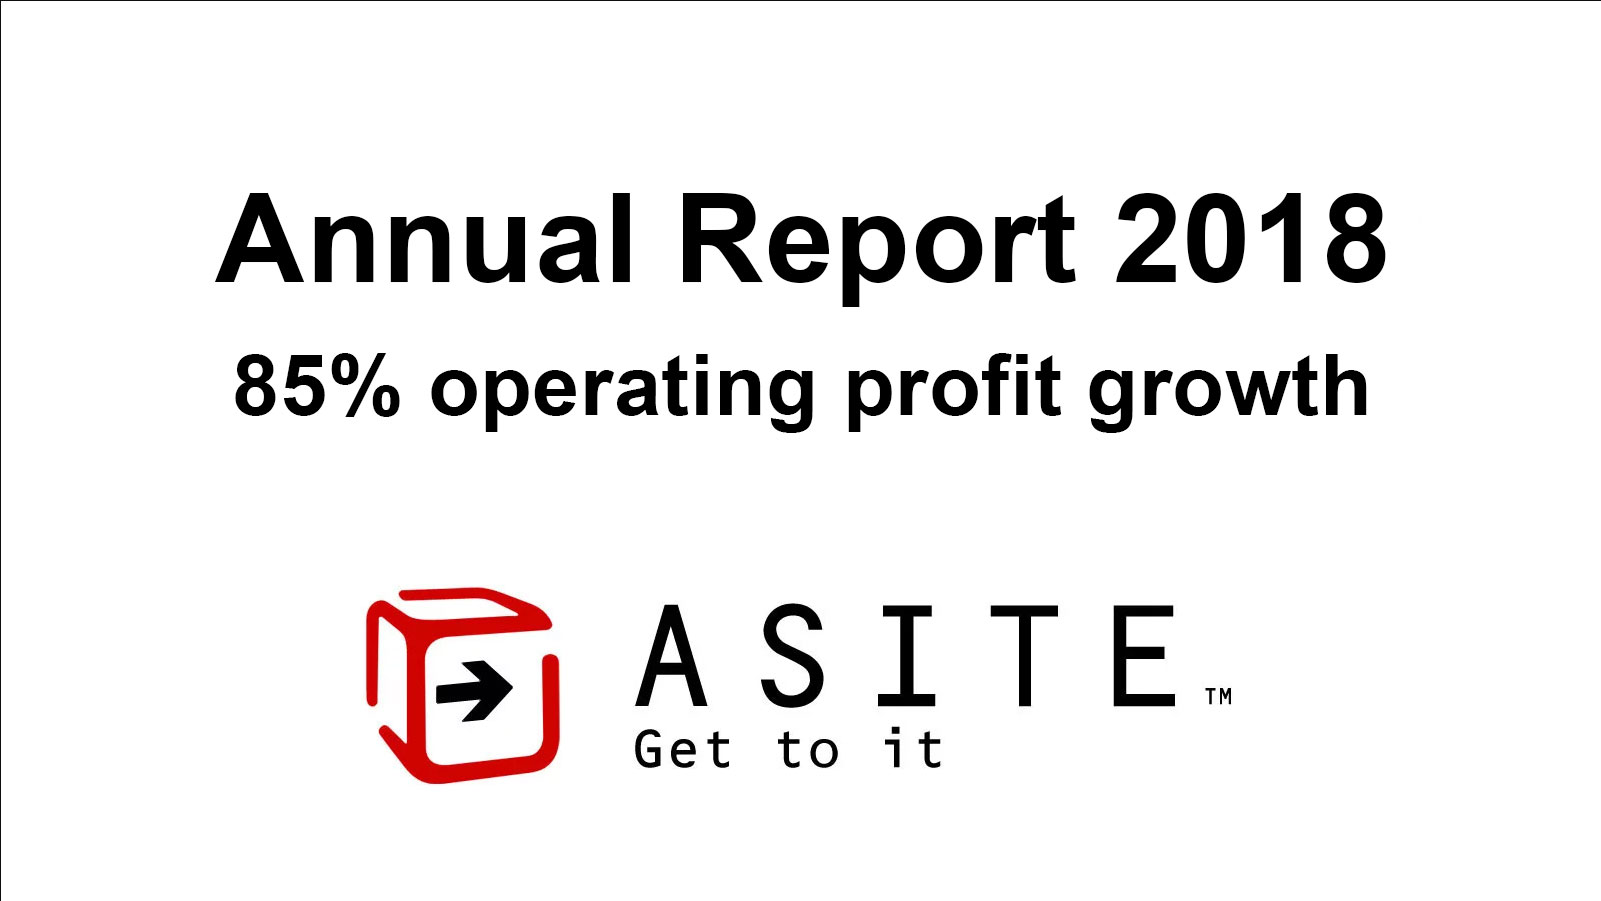 Asite announces 85% operating profit growth in its 2018 Annual Report